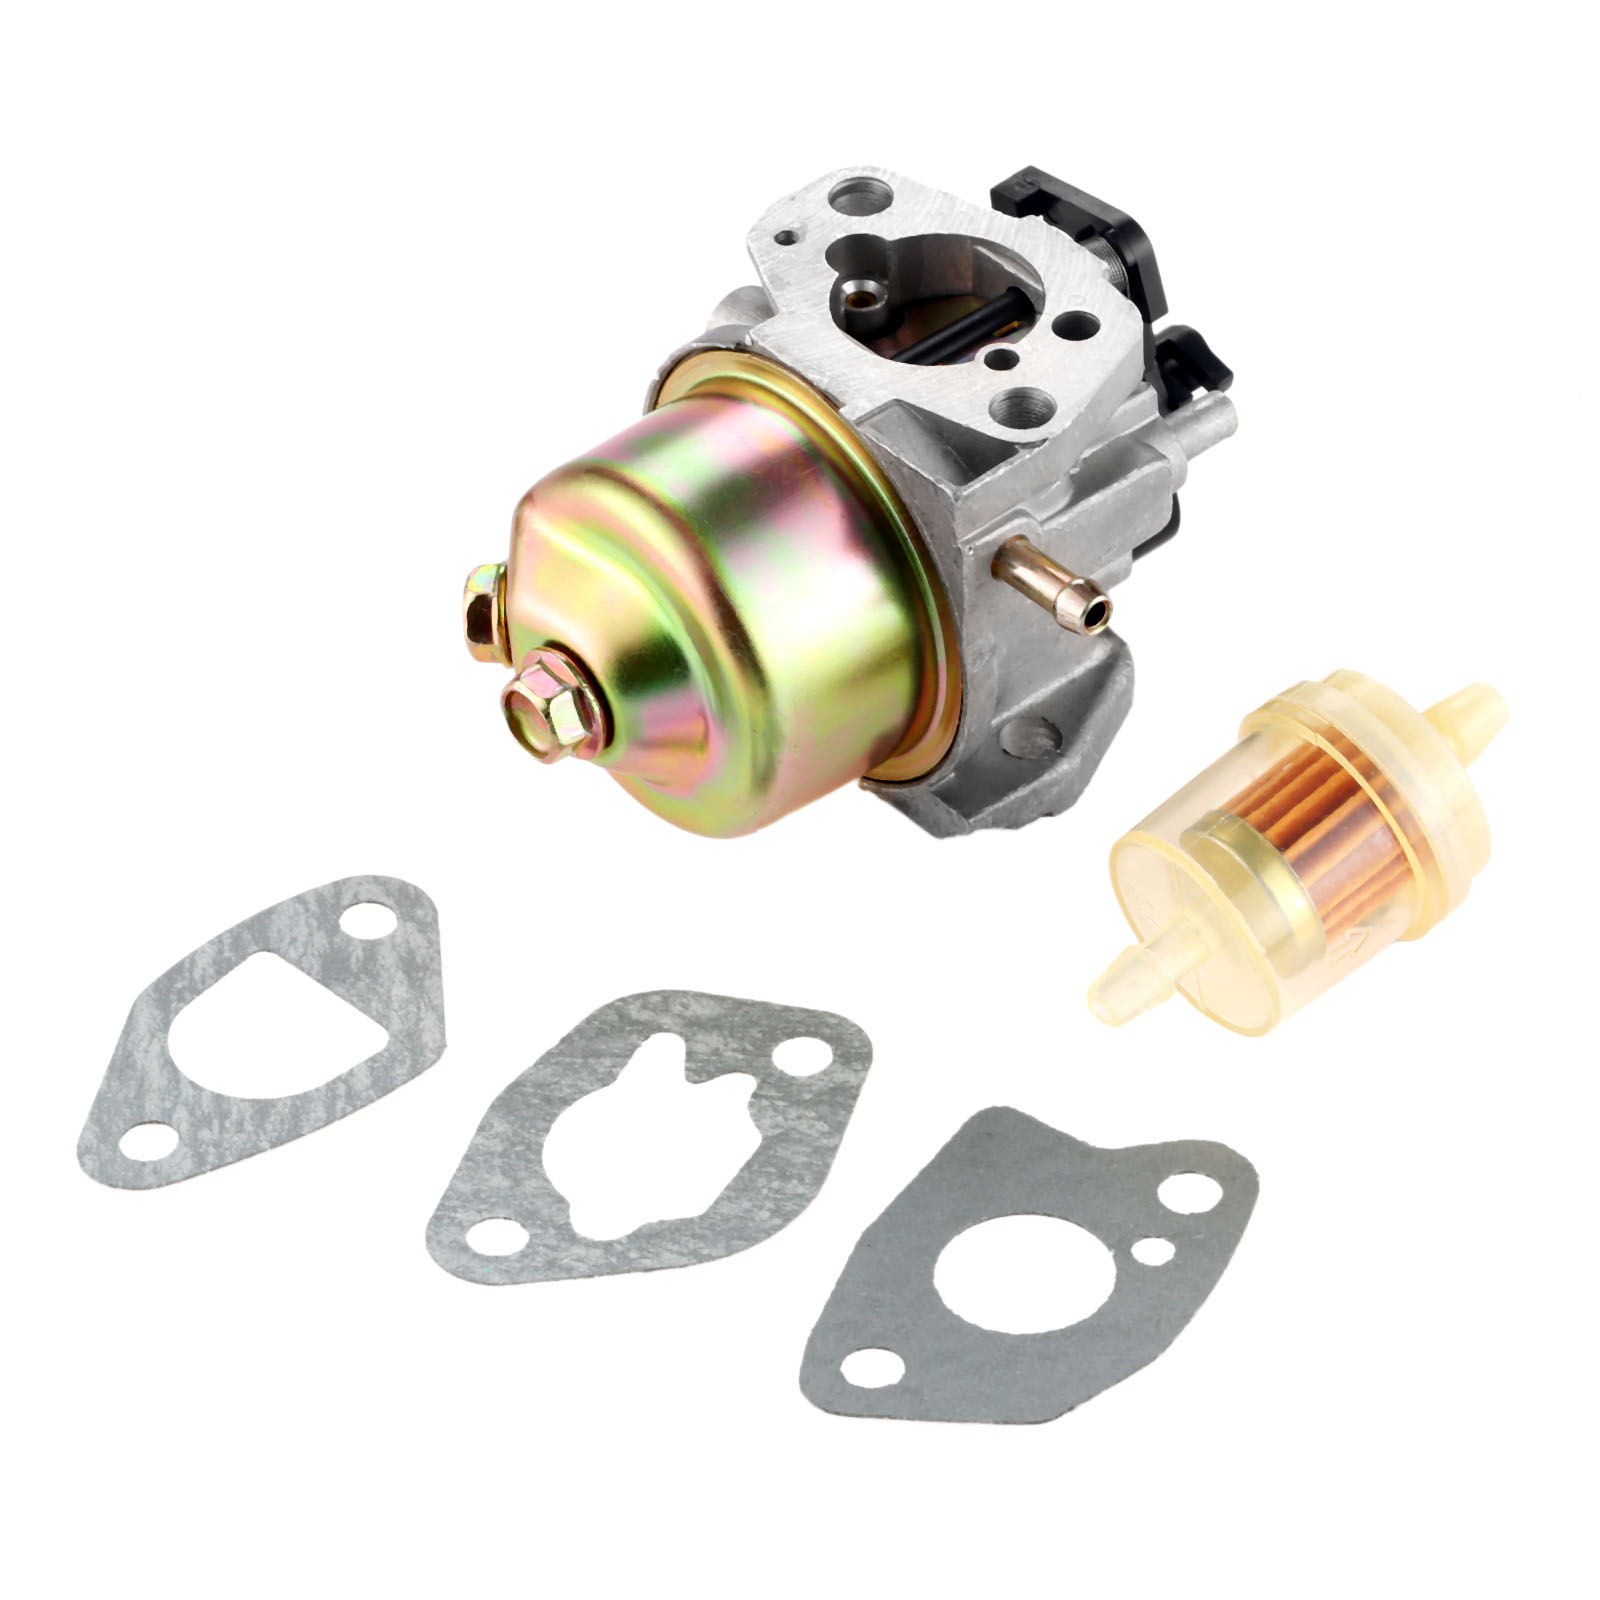 small resolution of dreld carburetor with carburetor gasket fuel filter for mtd cub cadet troy bilt lawn mower engines 951 10310 751 10310 in lawn mower from tools on